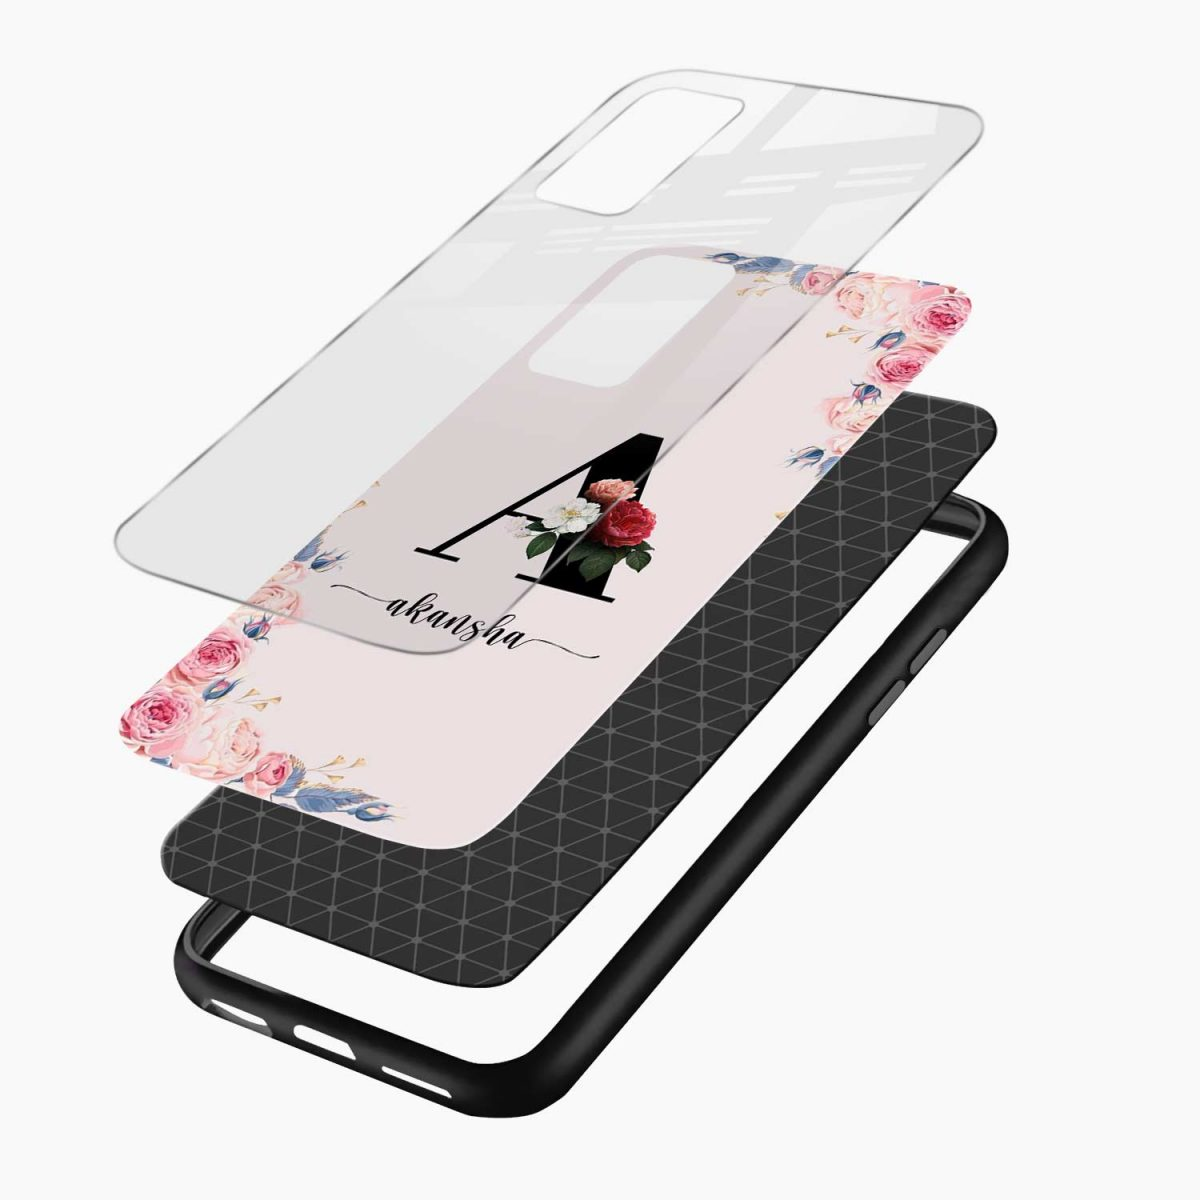 floral name personalised layers view samsung galaxy s20 fe back cover